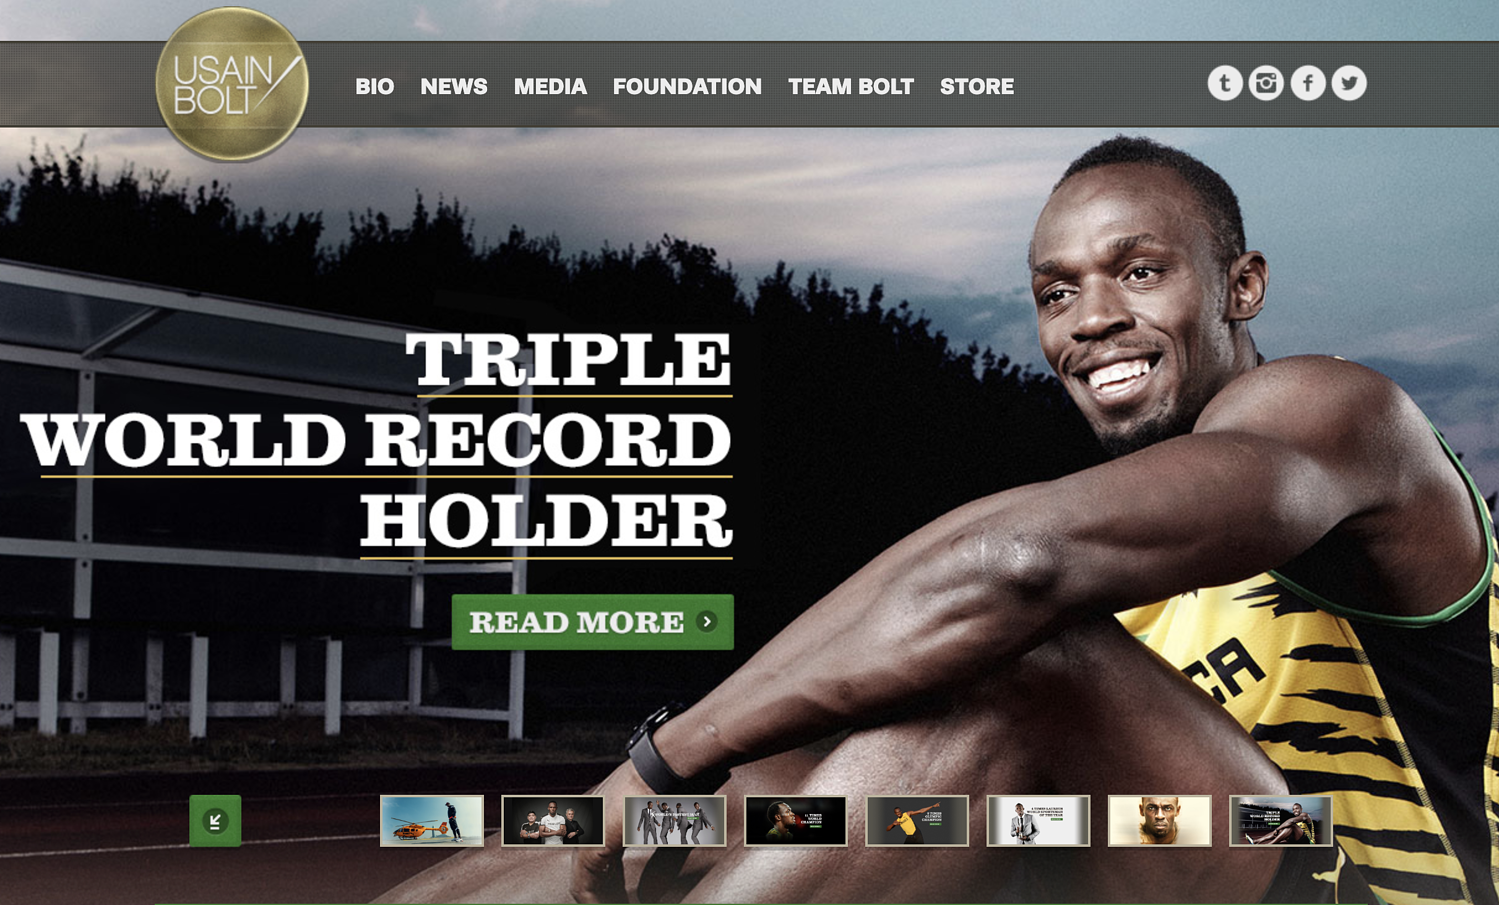 WordPress website example from Usain Bolt